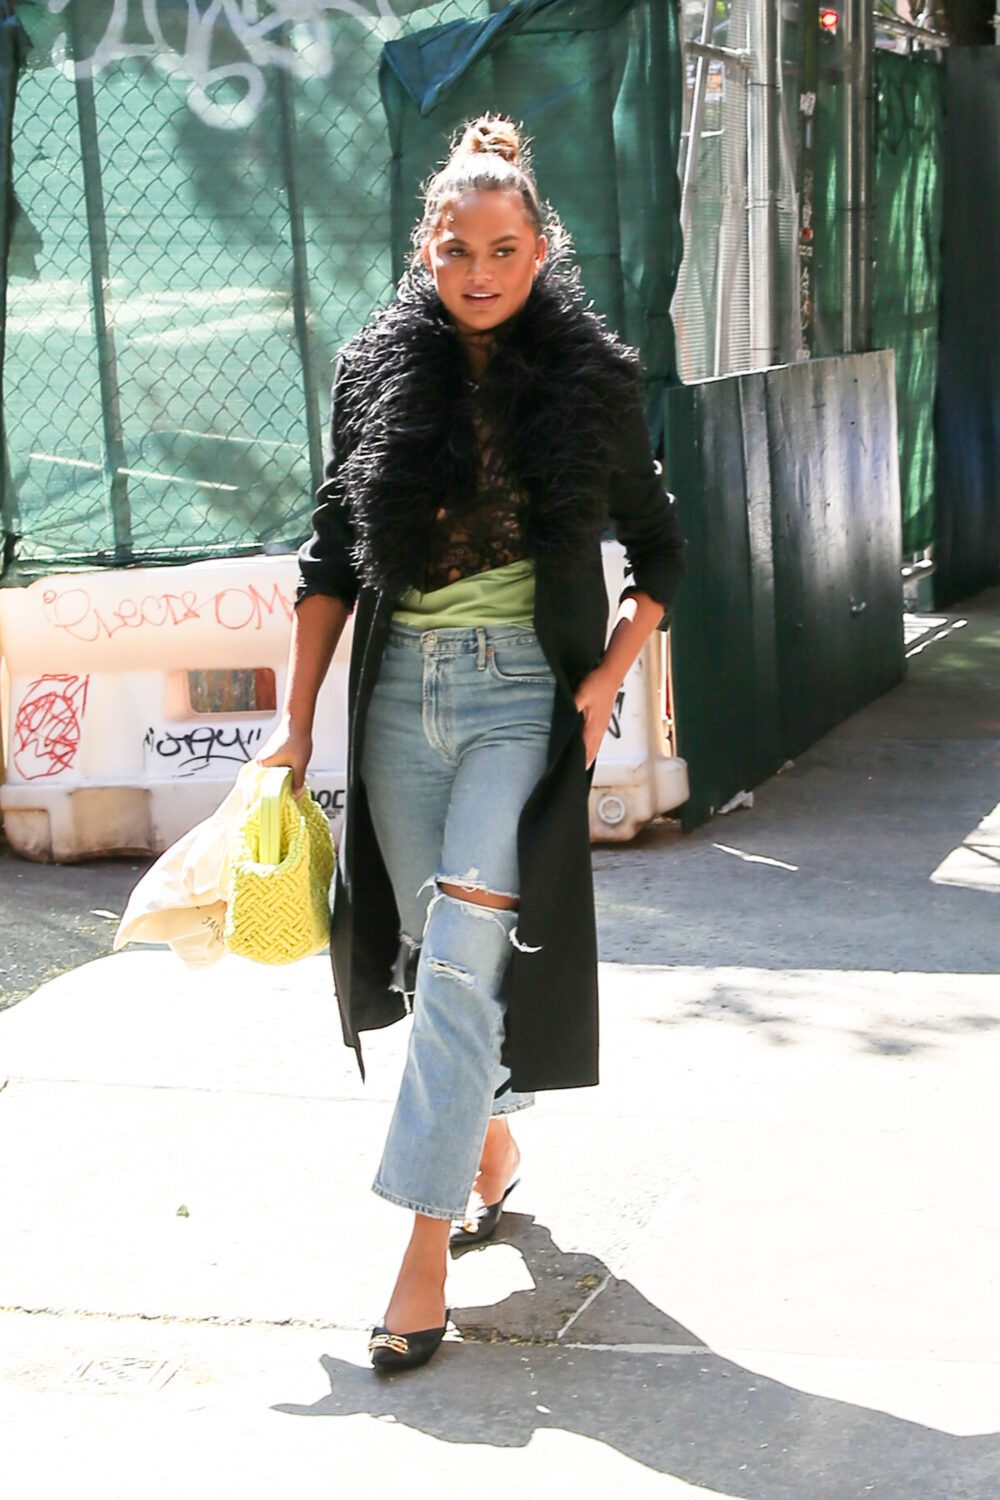 Chrissy Teigen and John Legend seen out and about in New York City